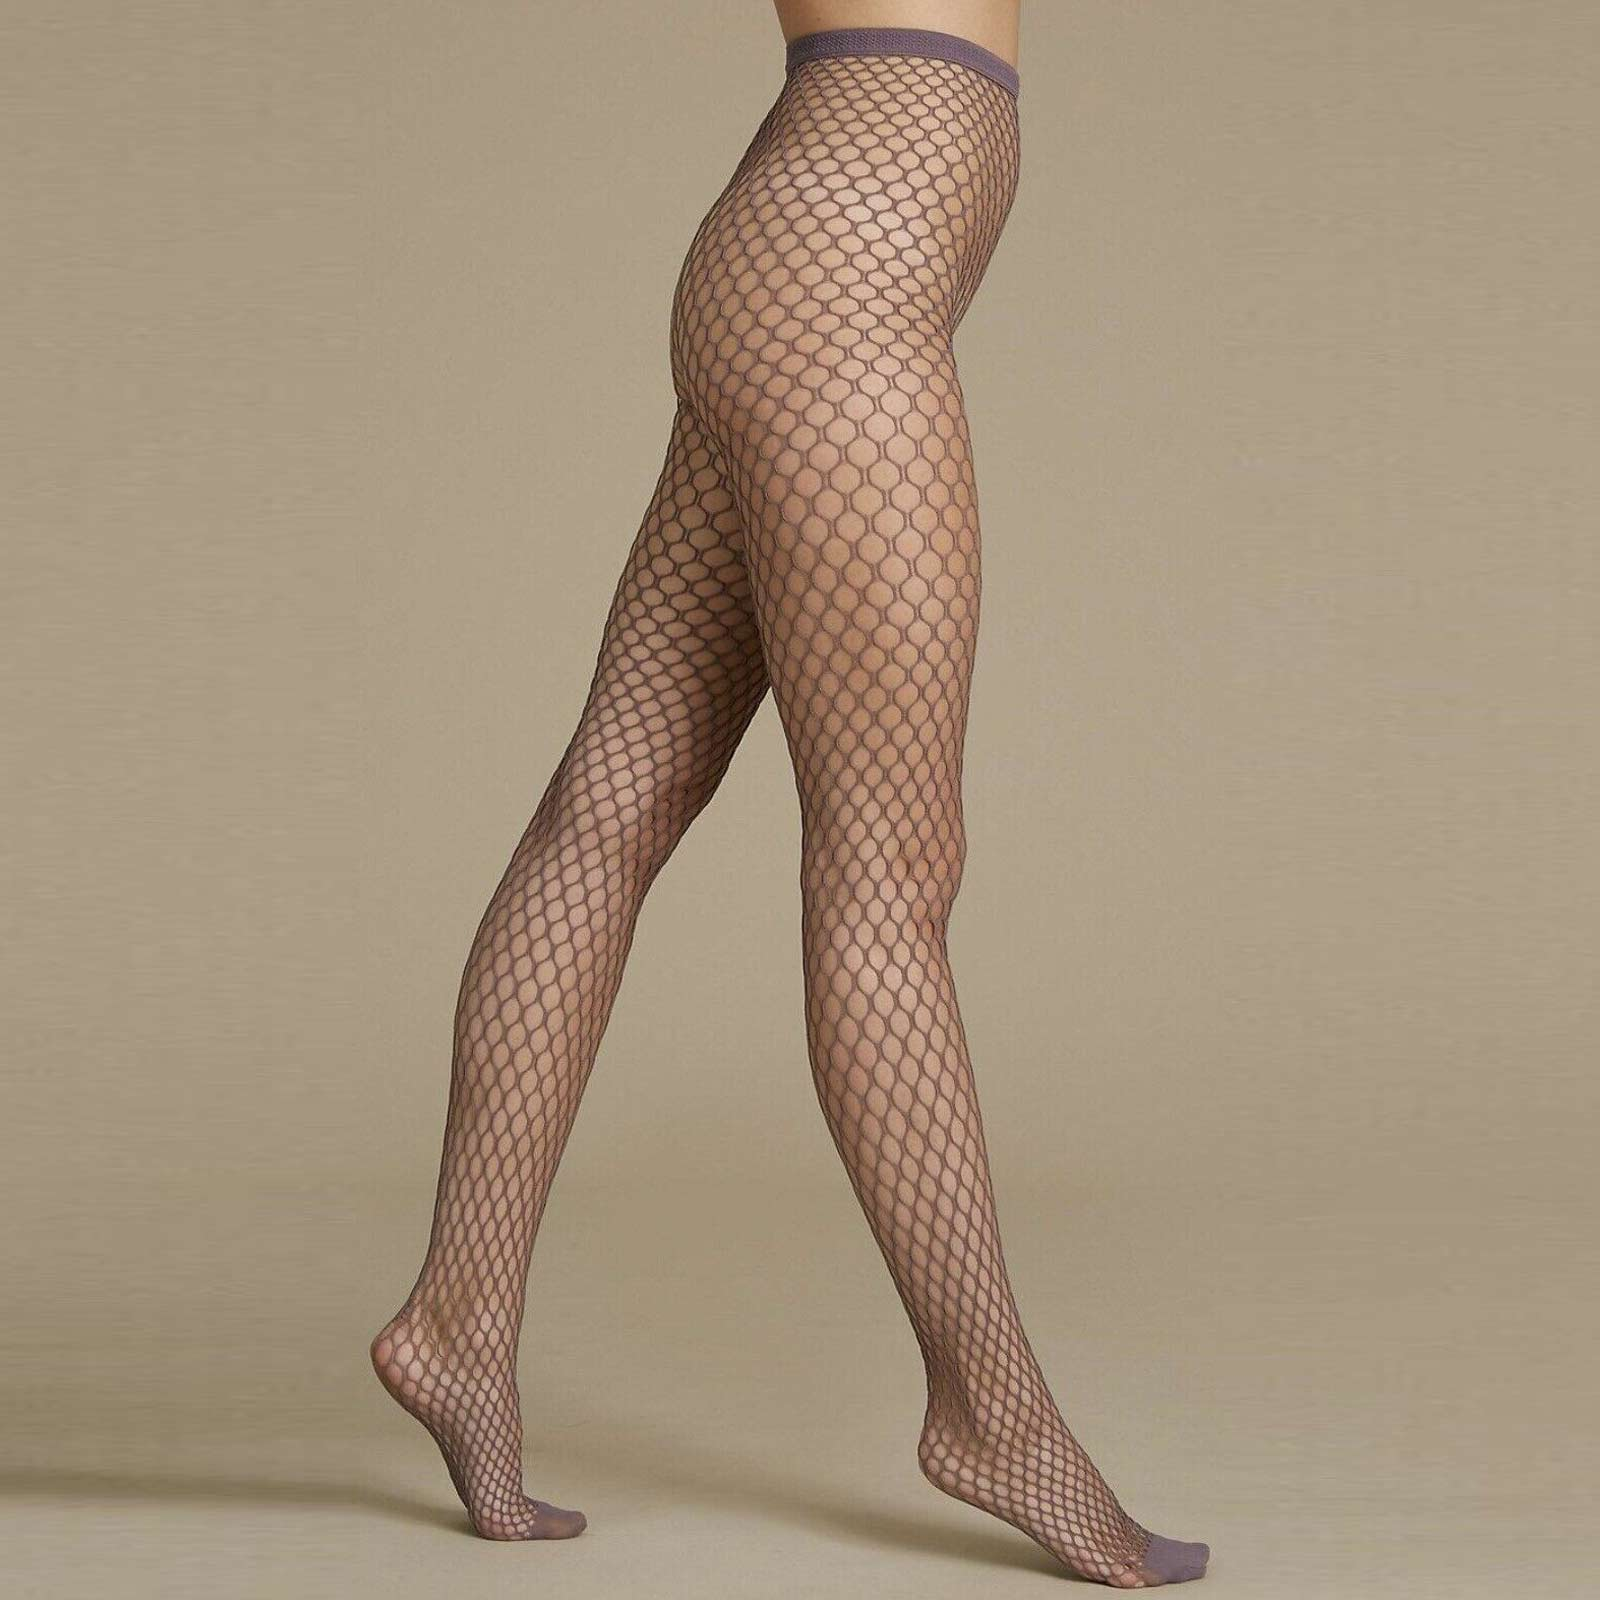 b8ad4342829 M S Black Navy Taupe Large Sexy Fishnet Tights S-XL Plus Size Net ...